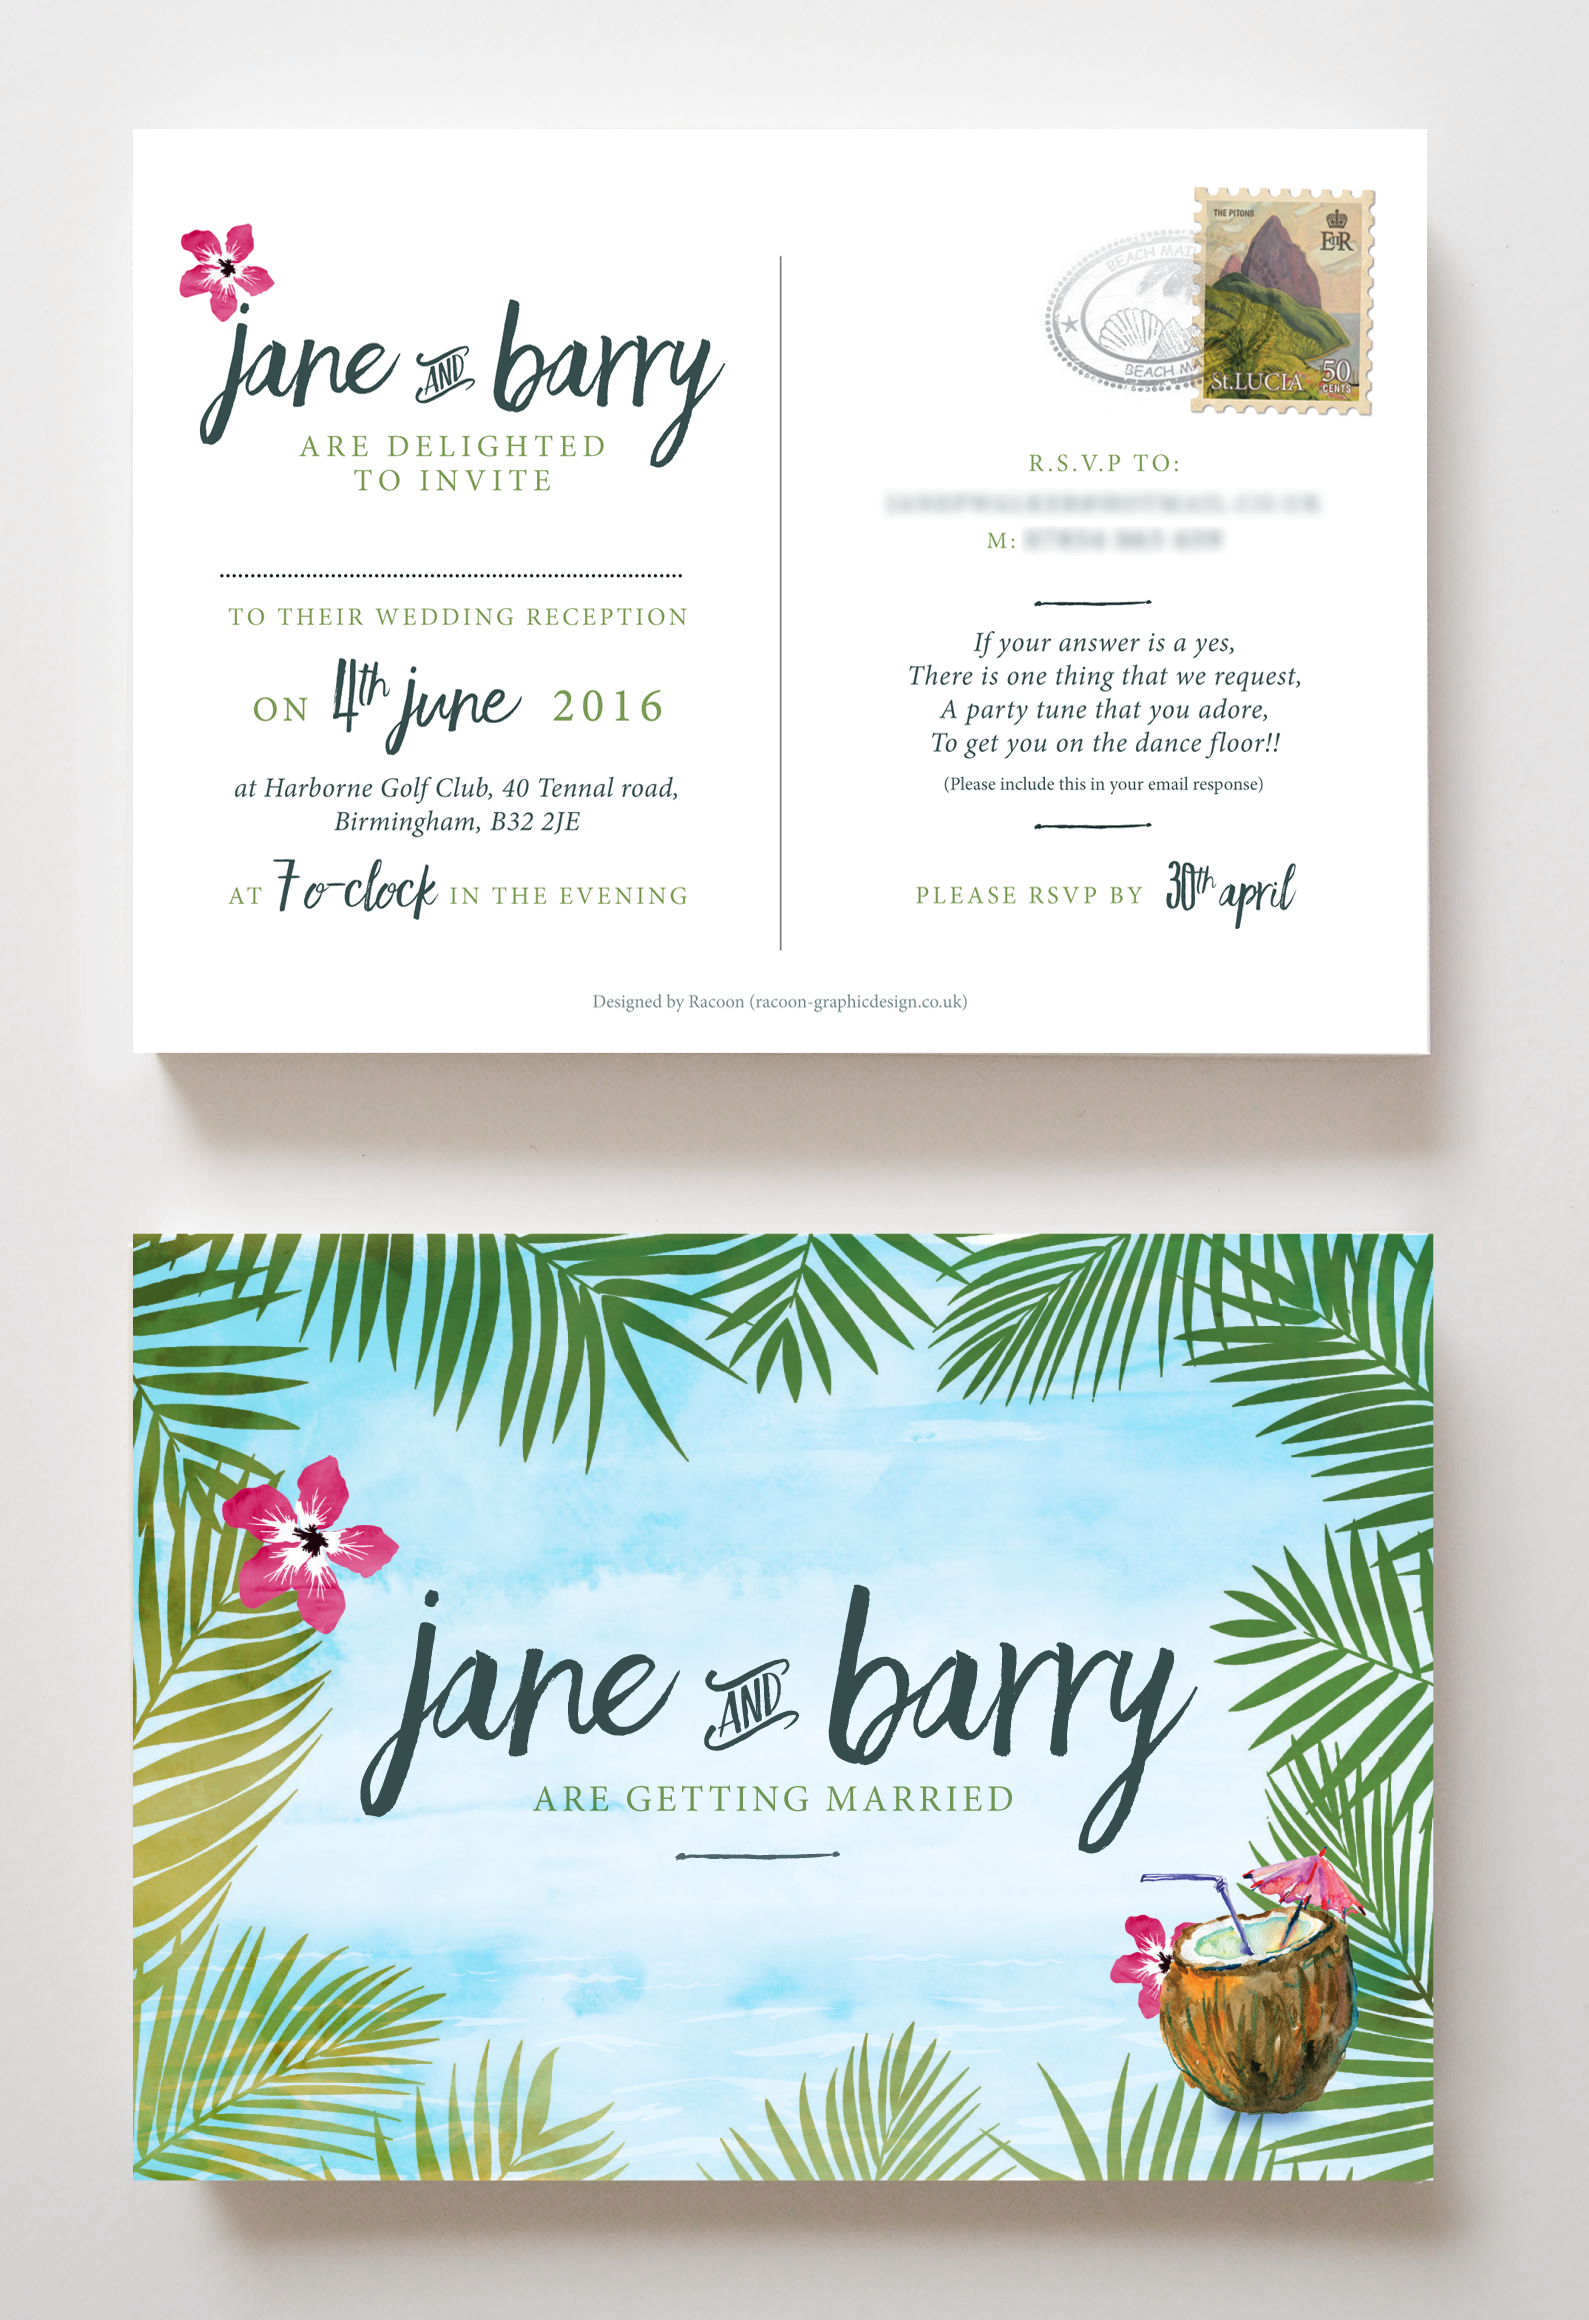 Racoon Graphic Design - Wedding Stationery